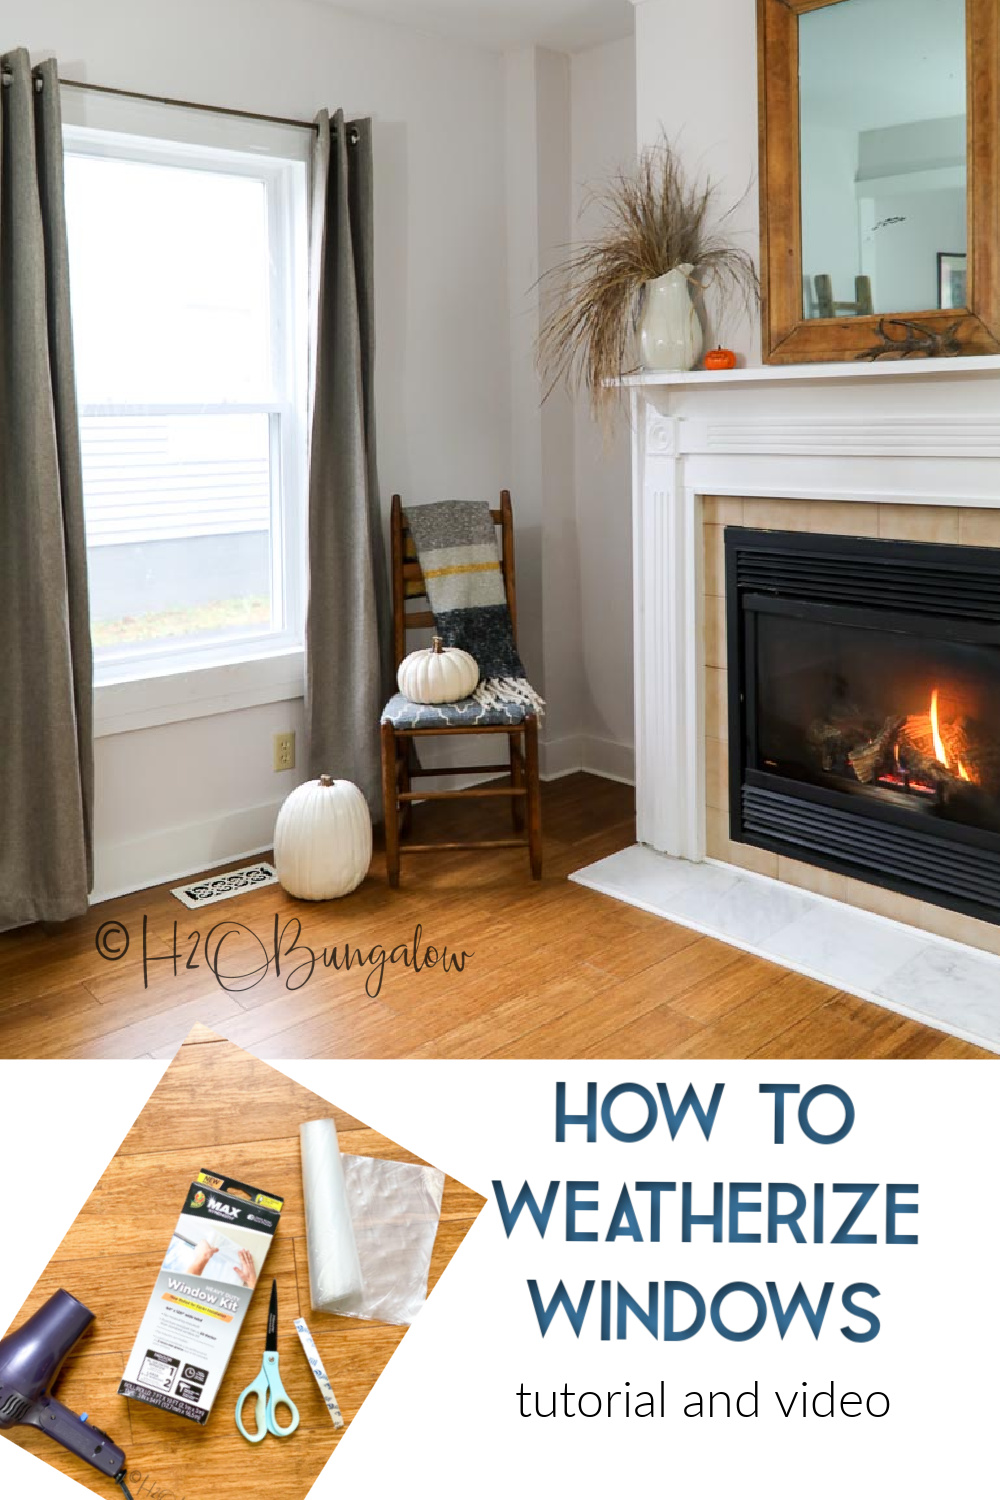 How to Weatherize Windows  With Plastic Film via @h2obungalow